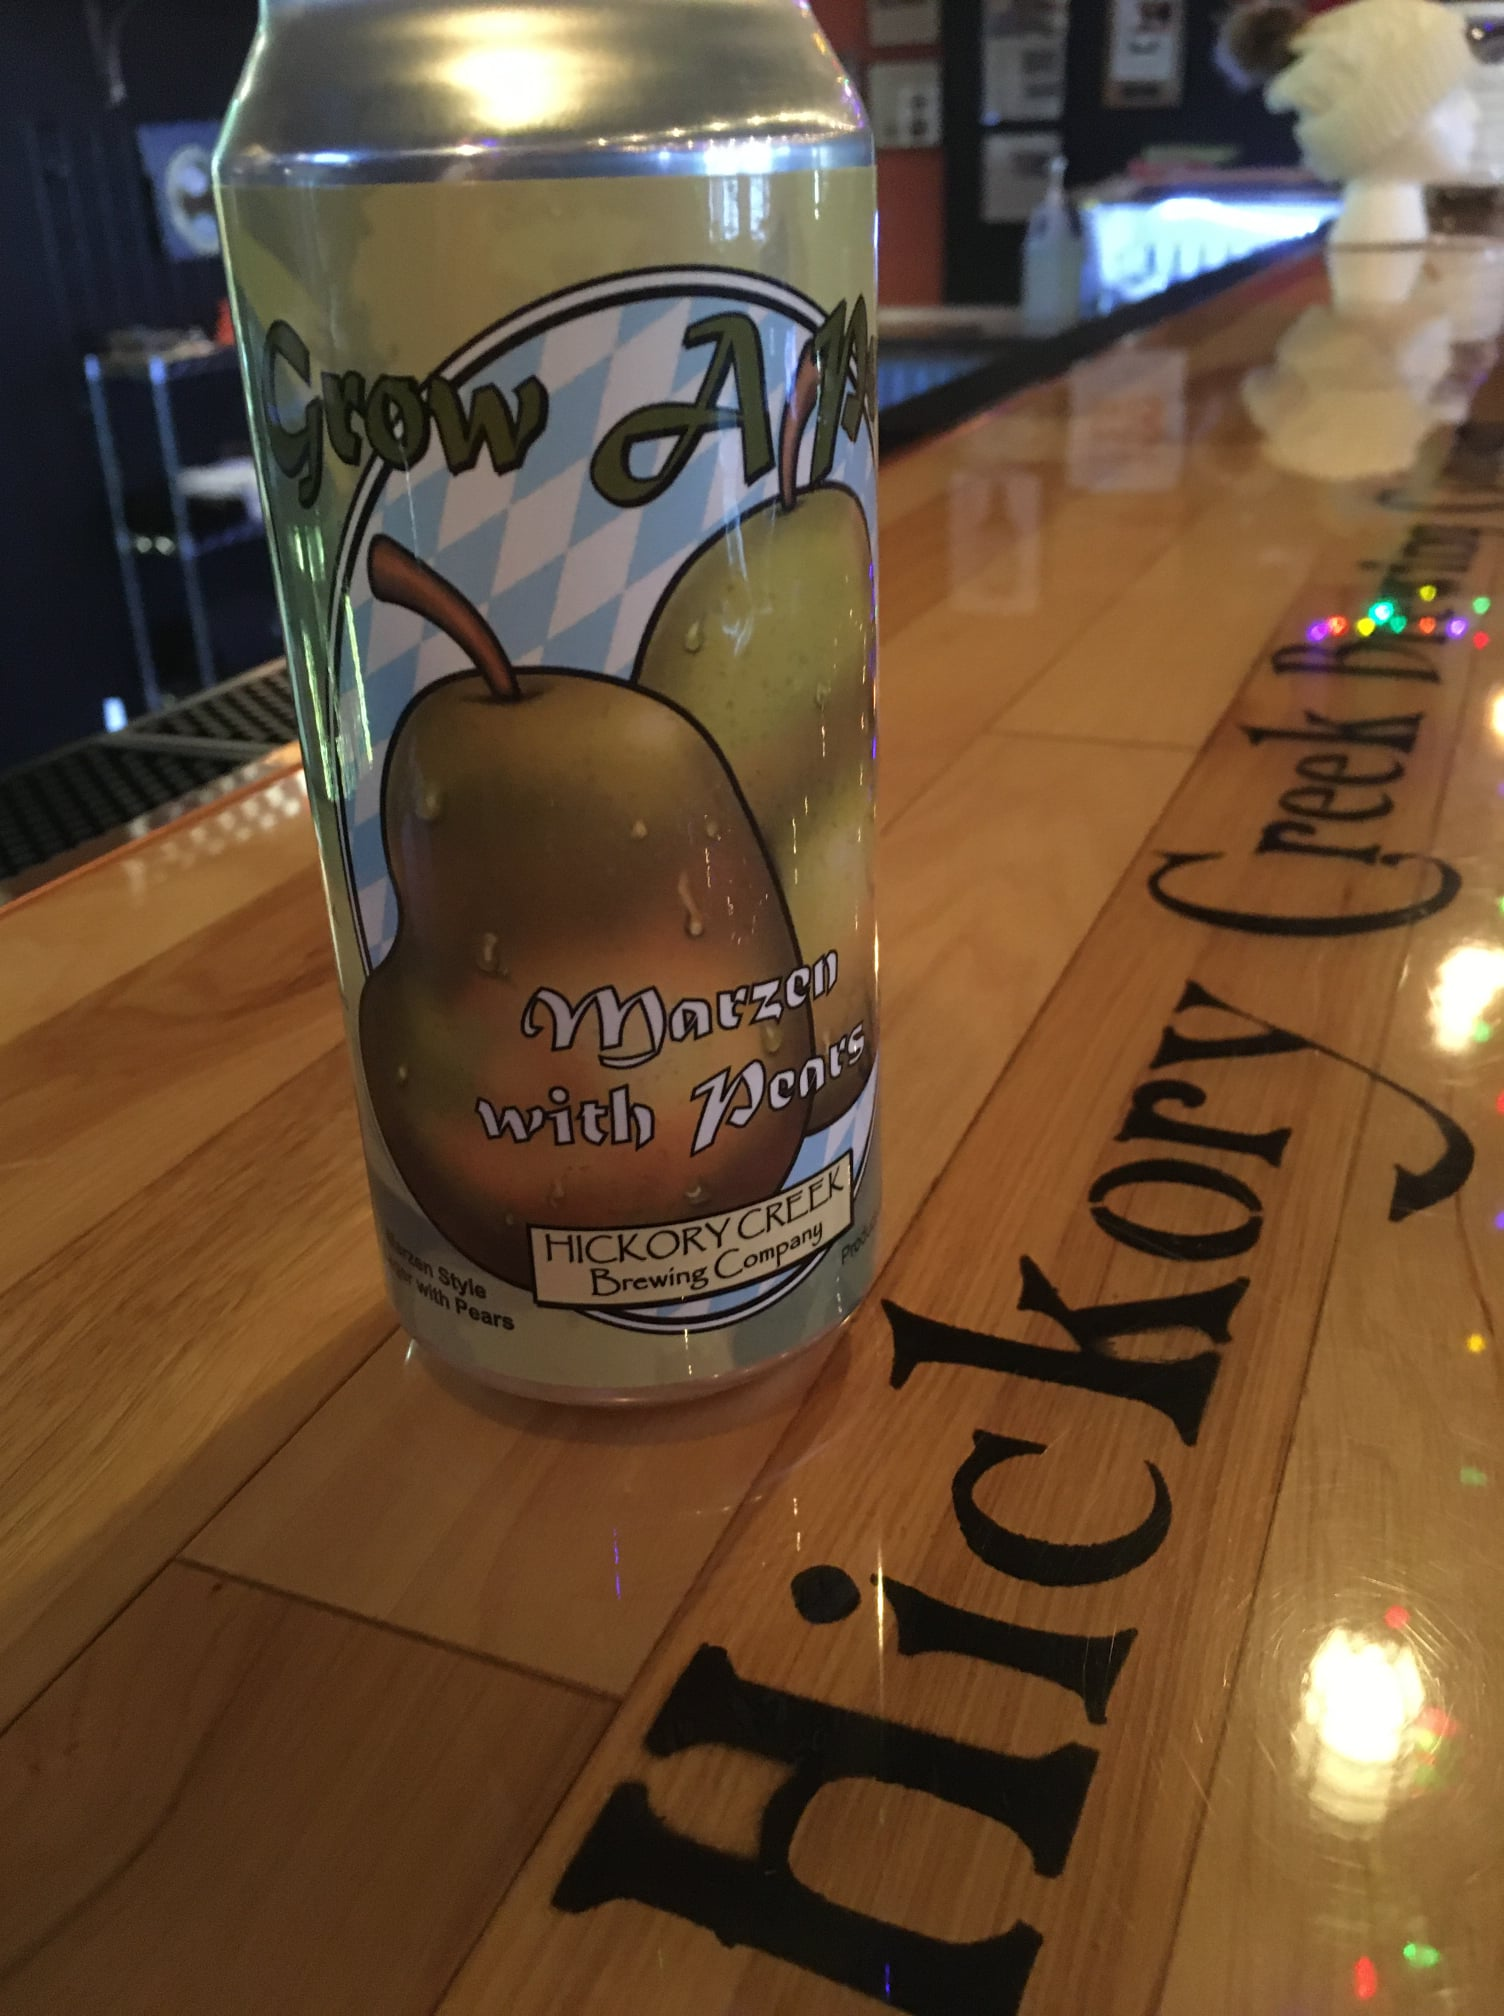 A can of Grow a Pear on the bar of Hickory Creek Brewing Company in New Lenox, IL